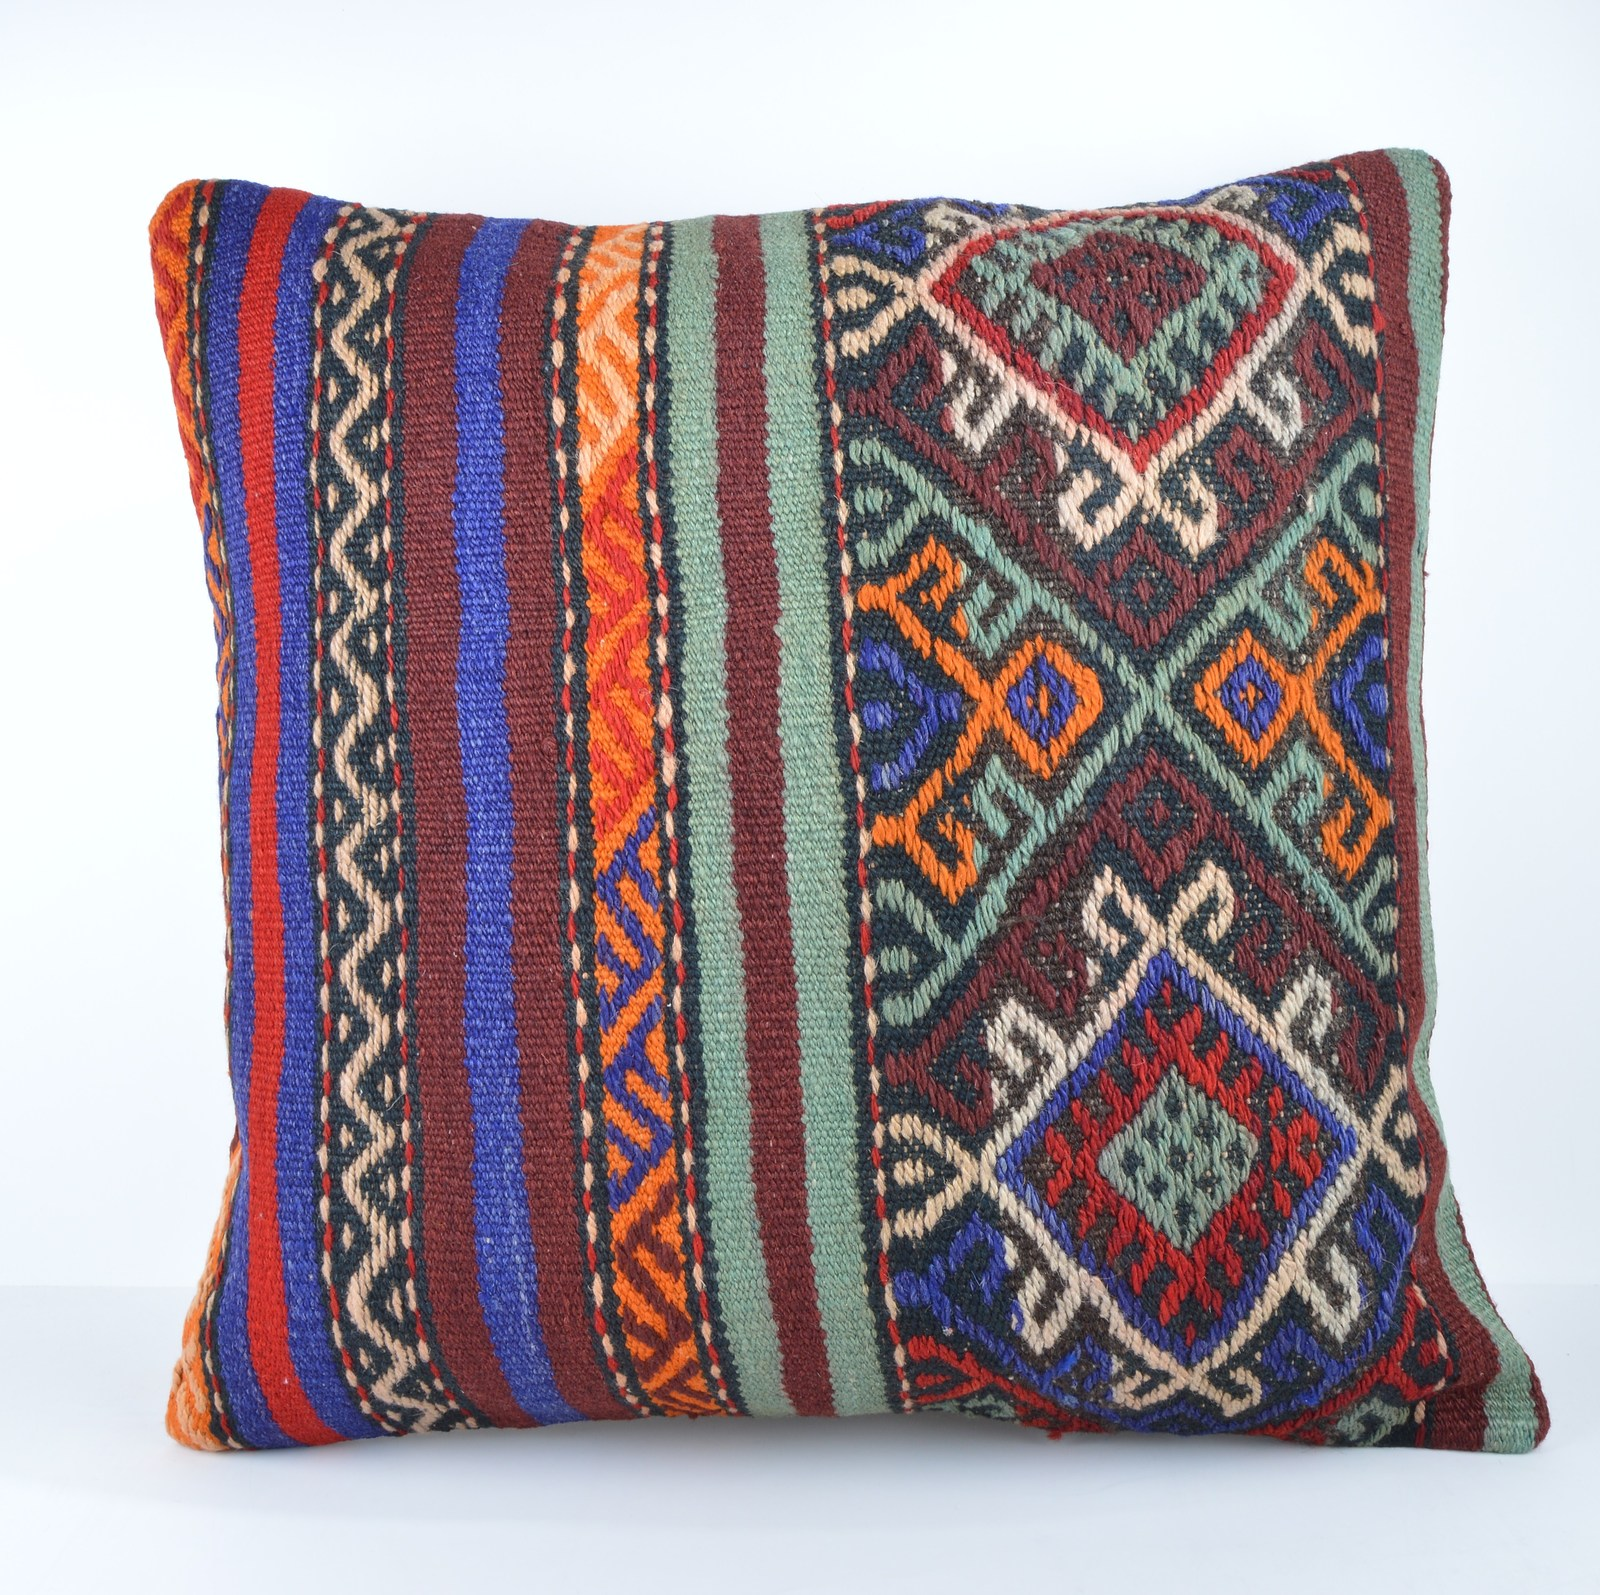 Xl Decorative Pillows : Dsc_0121